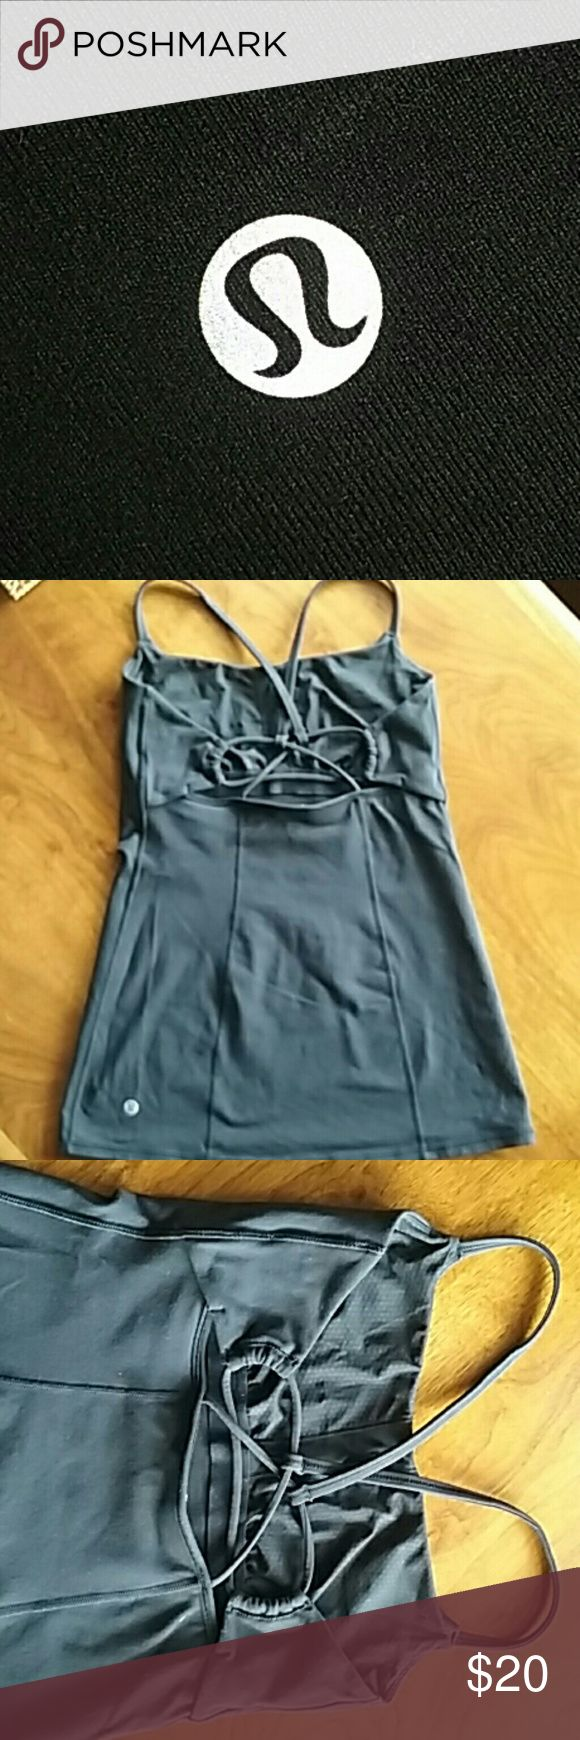 LULULEMON BLACK TOP Lululemon black spaghetti-strap top. Cute crisscross back, measures 19 inches from front neckline to hem. No bra cups. Great condition. Bundle discount. LULULEMON Tops Tank Tops